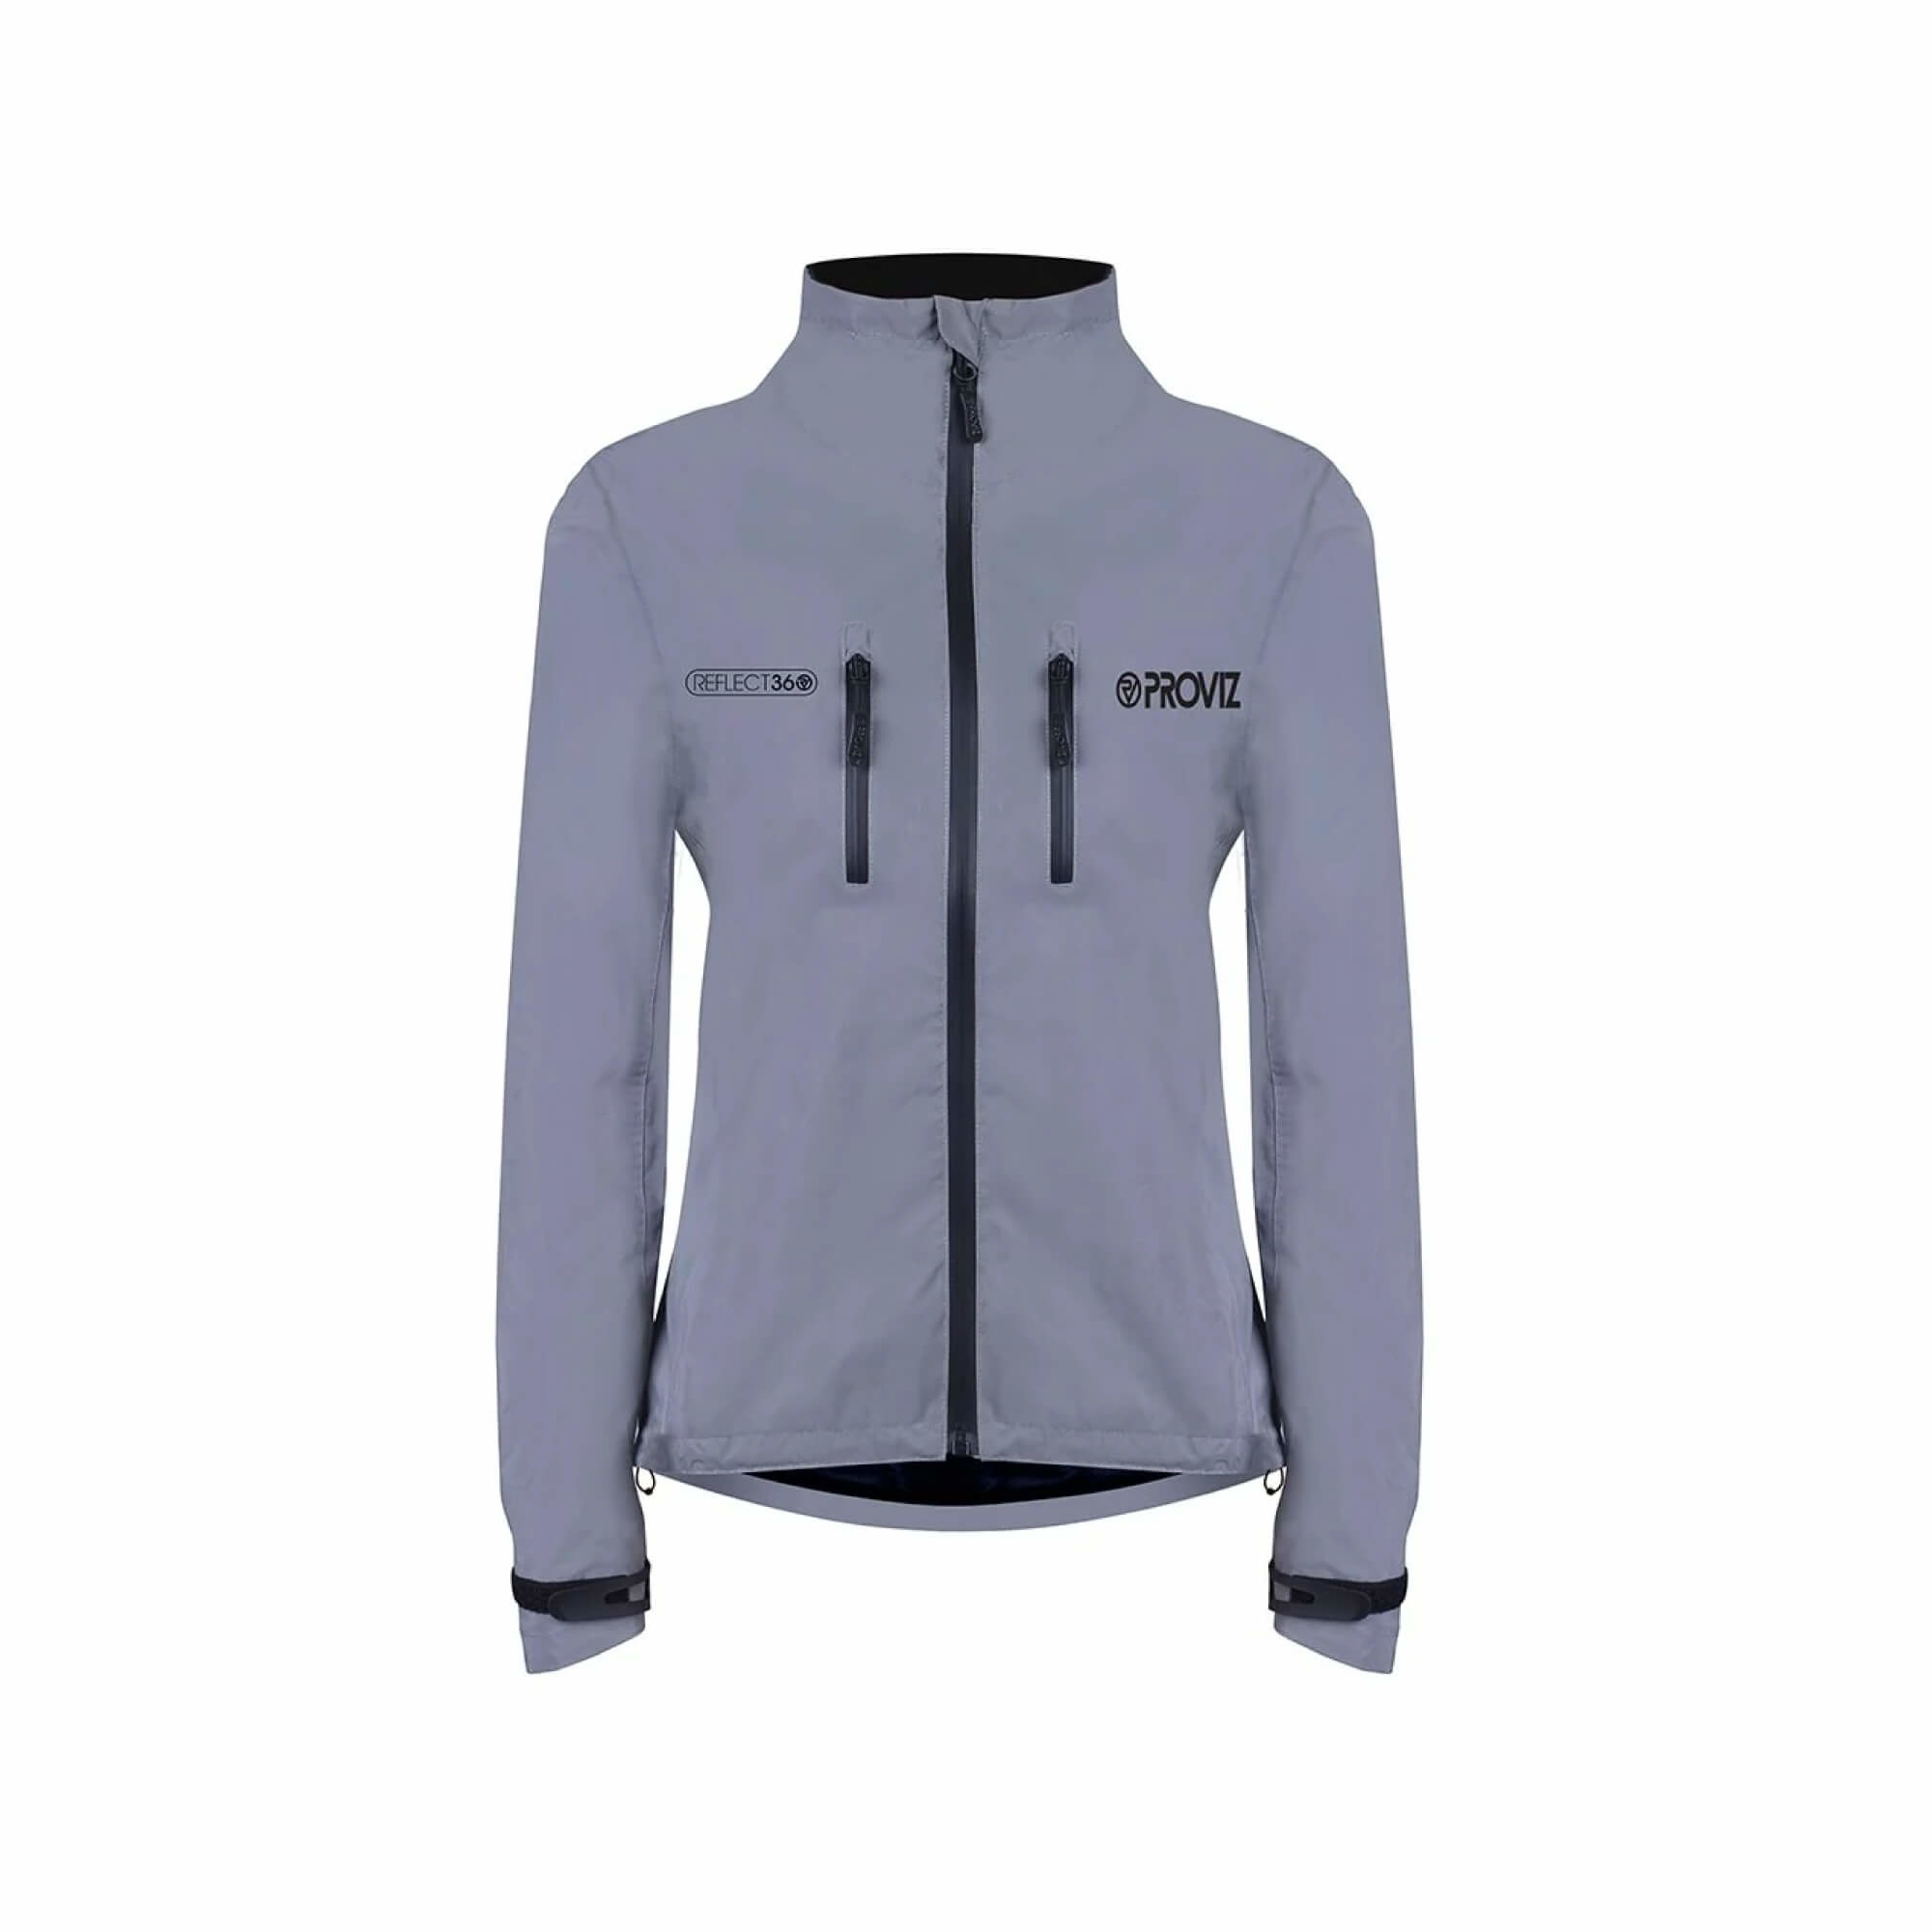 Jacket Cycling 360 Reflect Storm Proof Womens-1